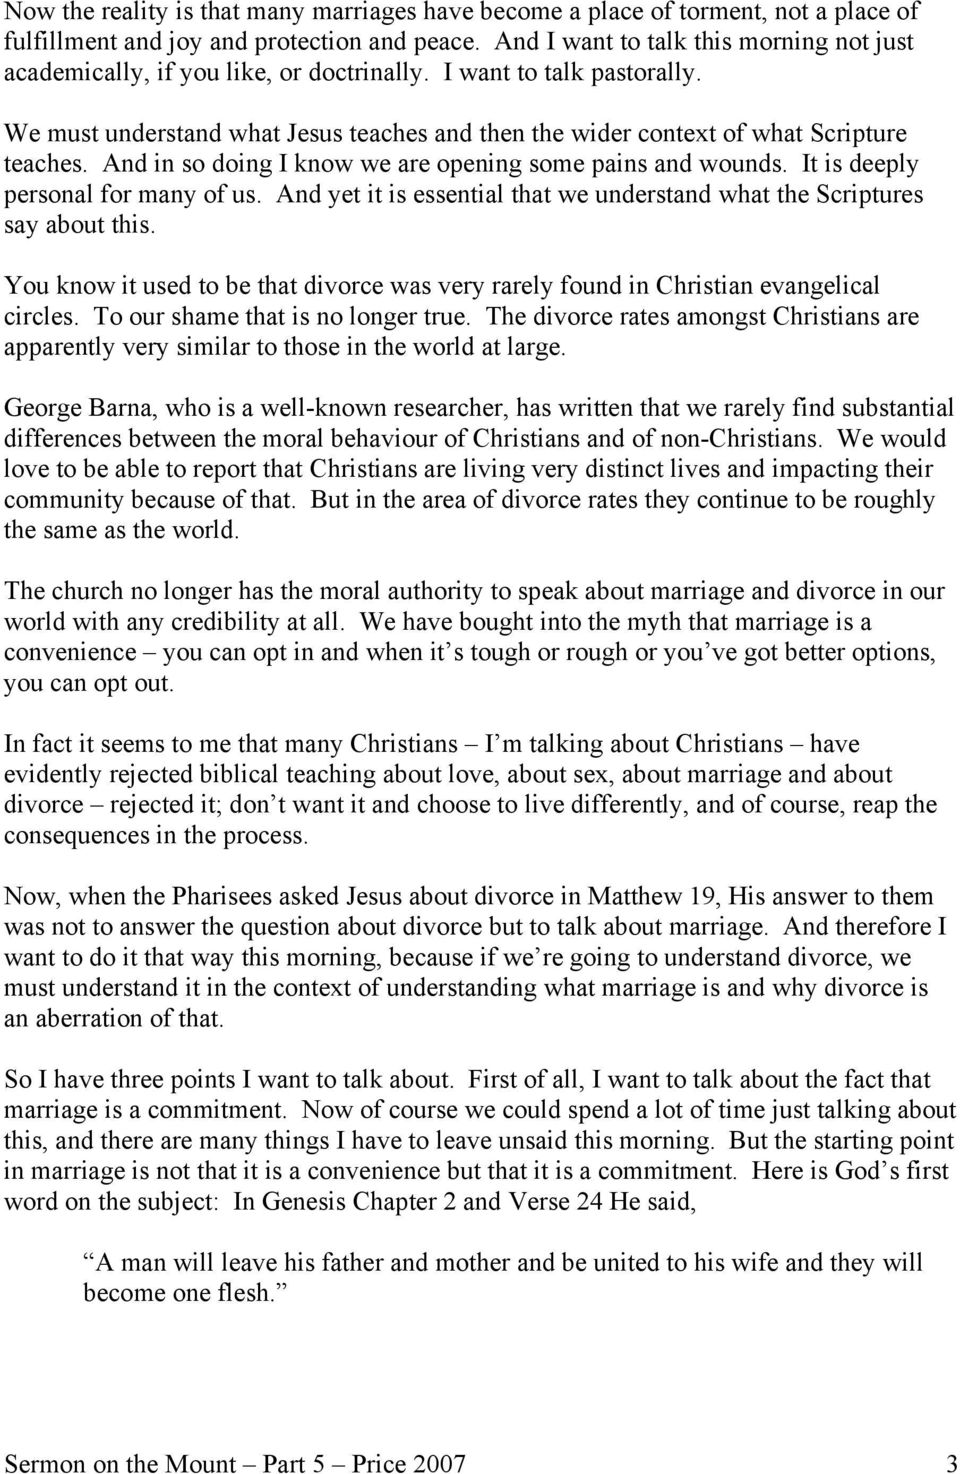 Sermon on the Mount Part 5 The Christian and Divorce Pastor